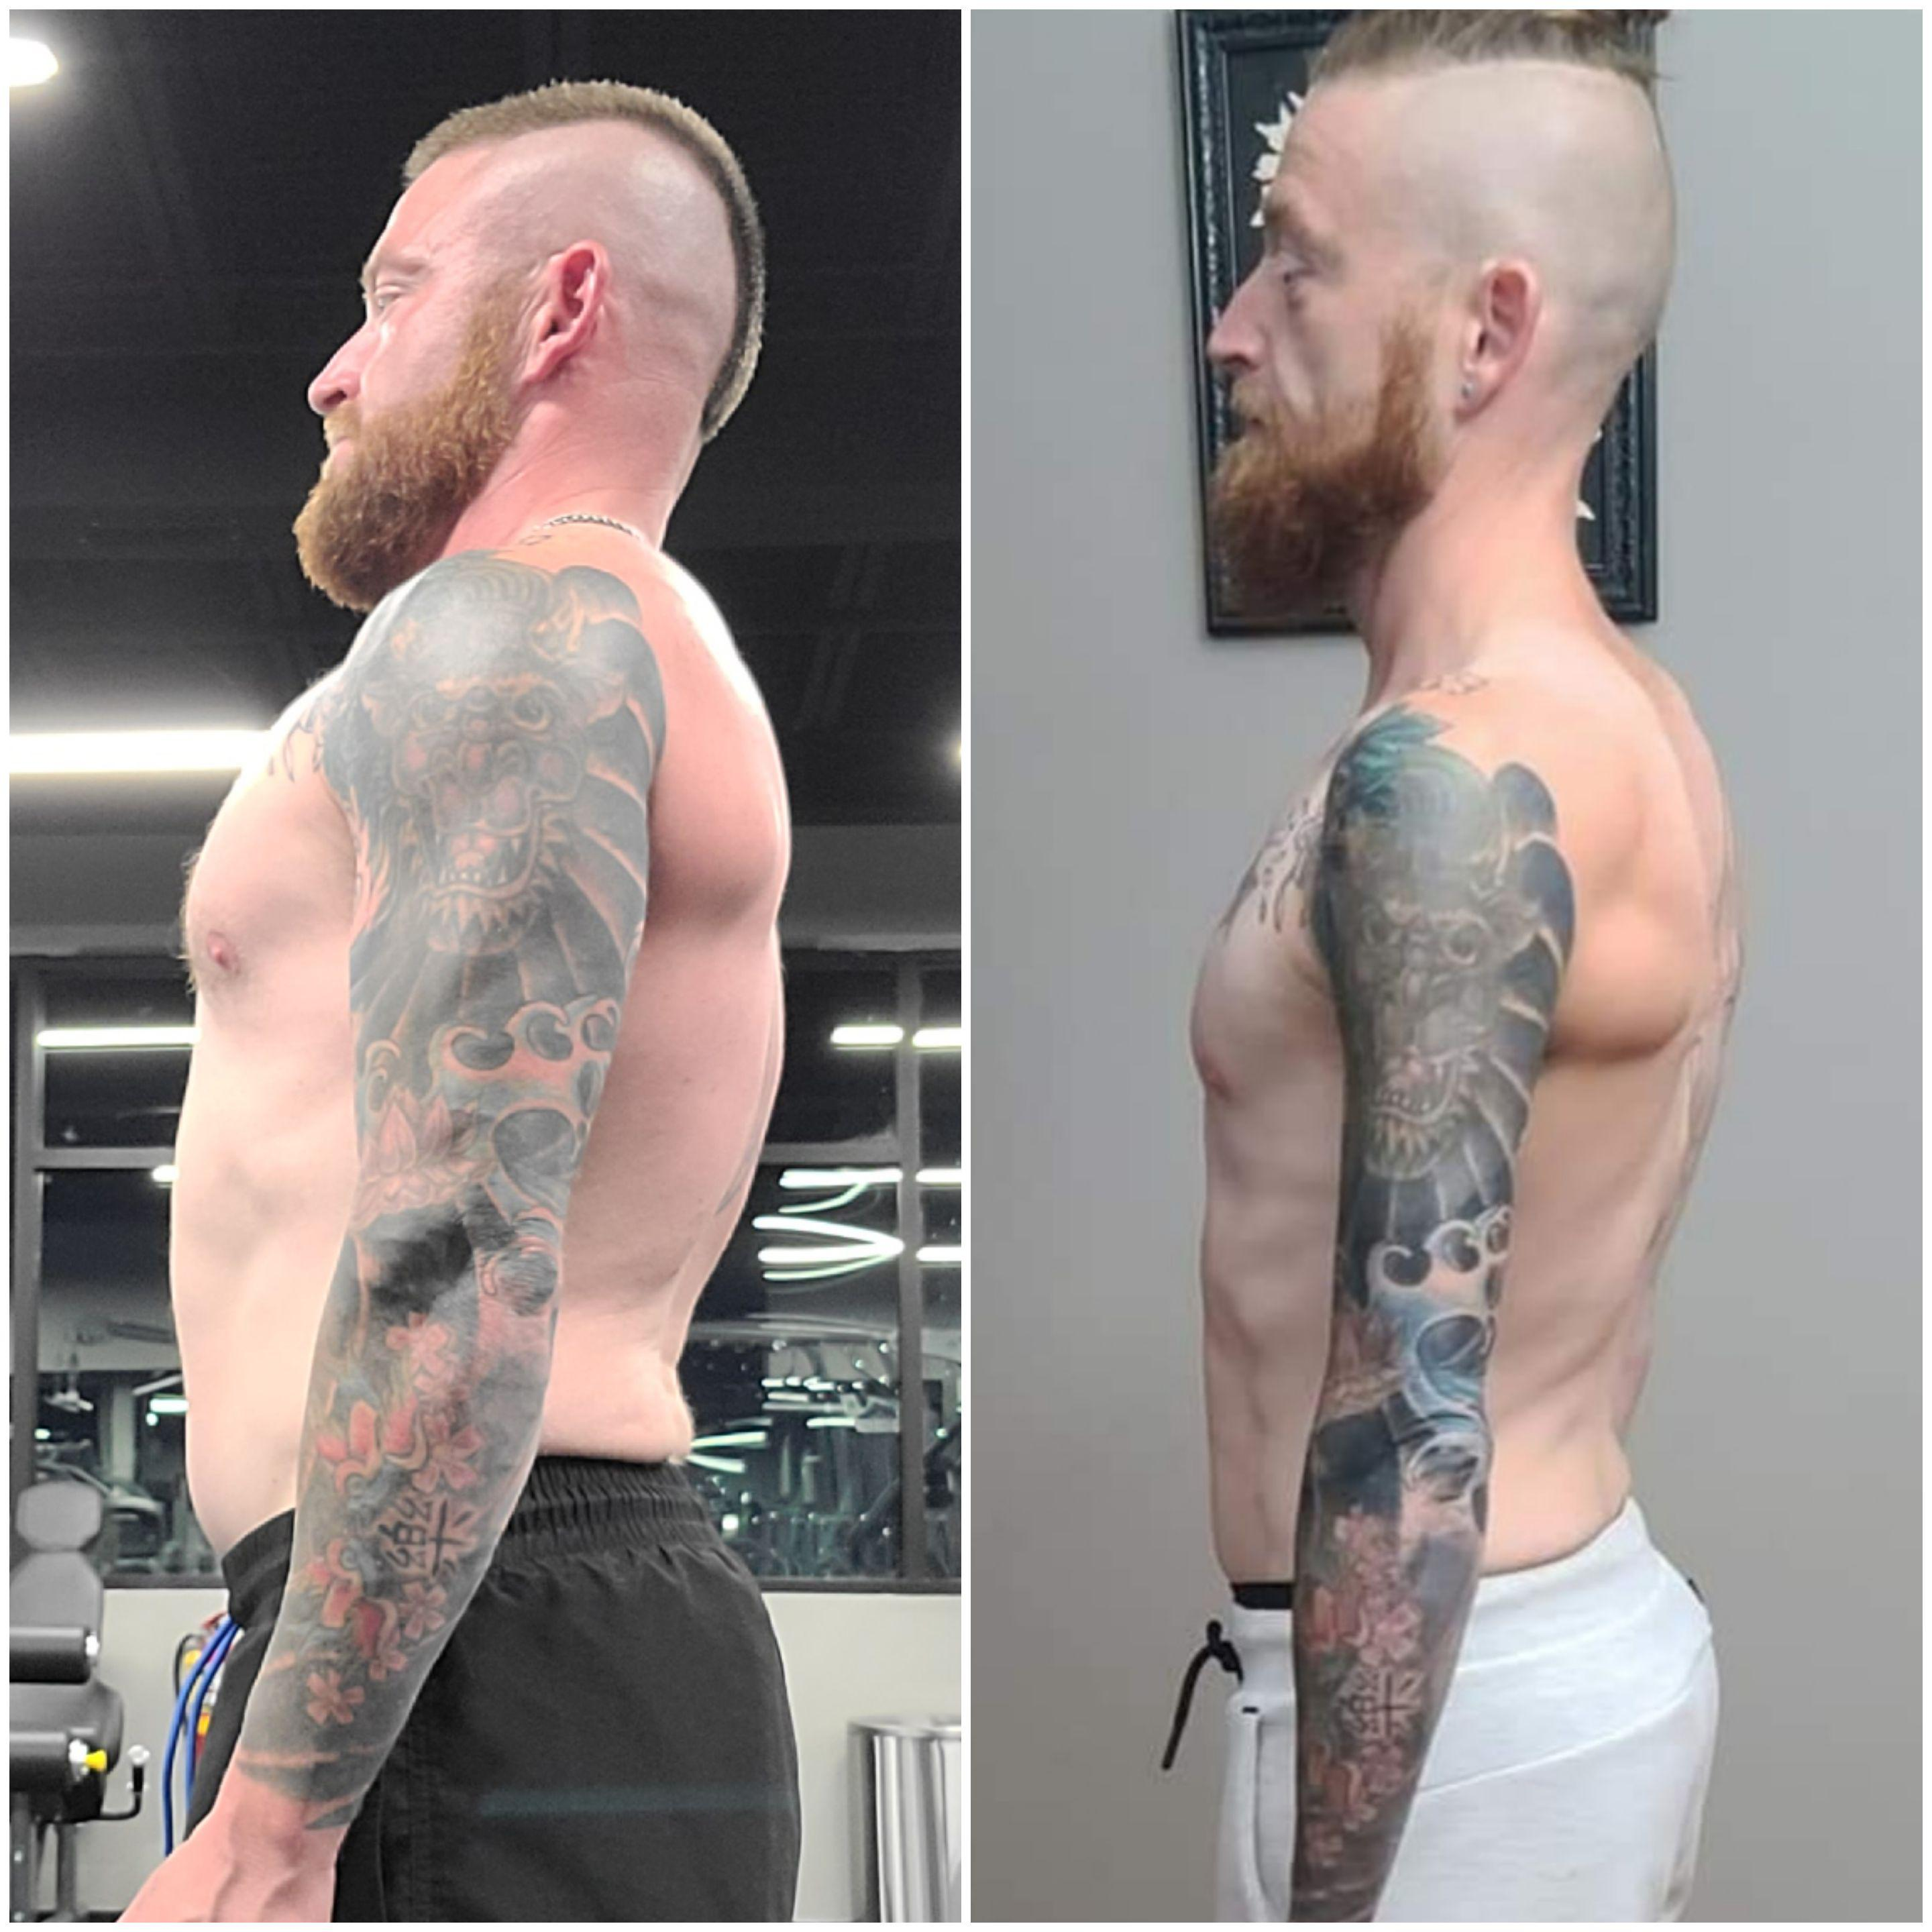 5 feet 3 Male Before and After 30 lbs Muscle Gain 125 lbs to 155 lbs